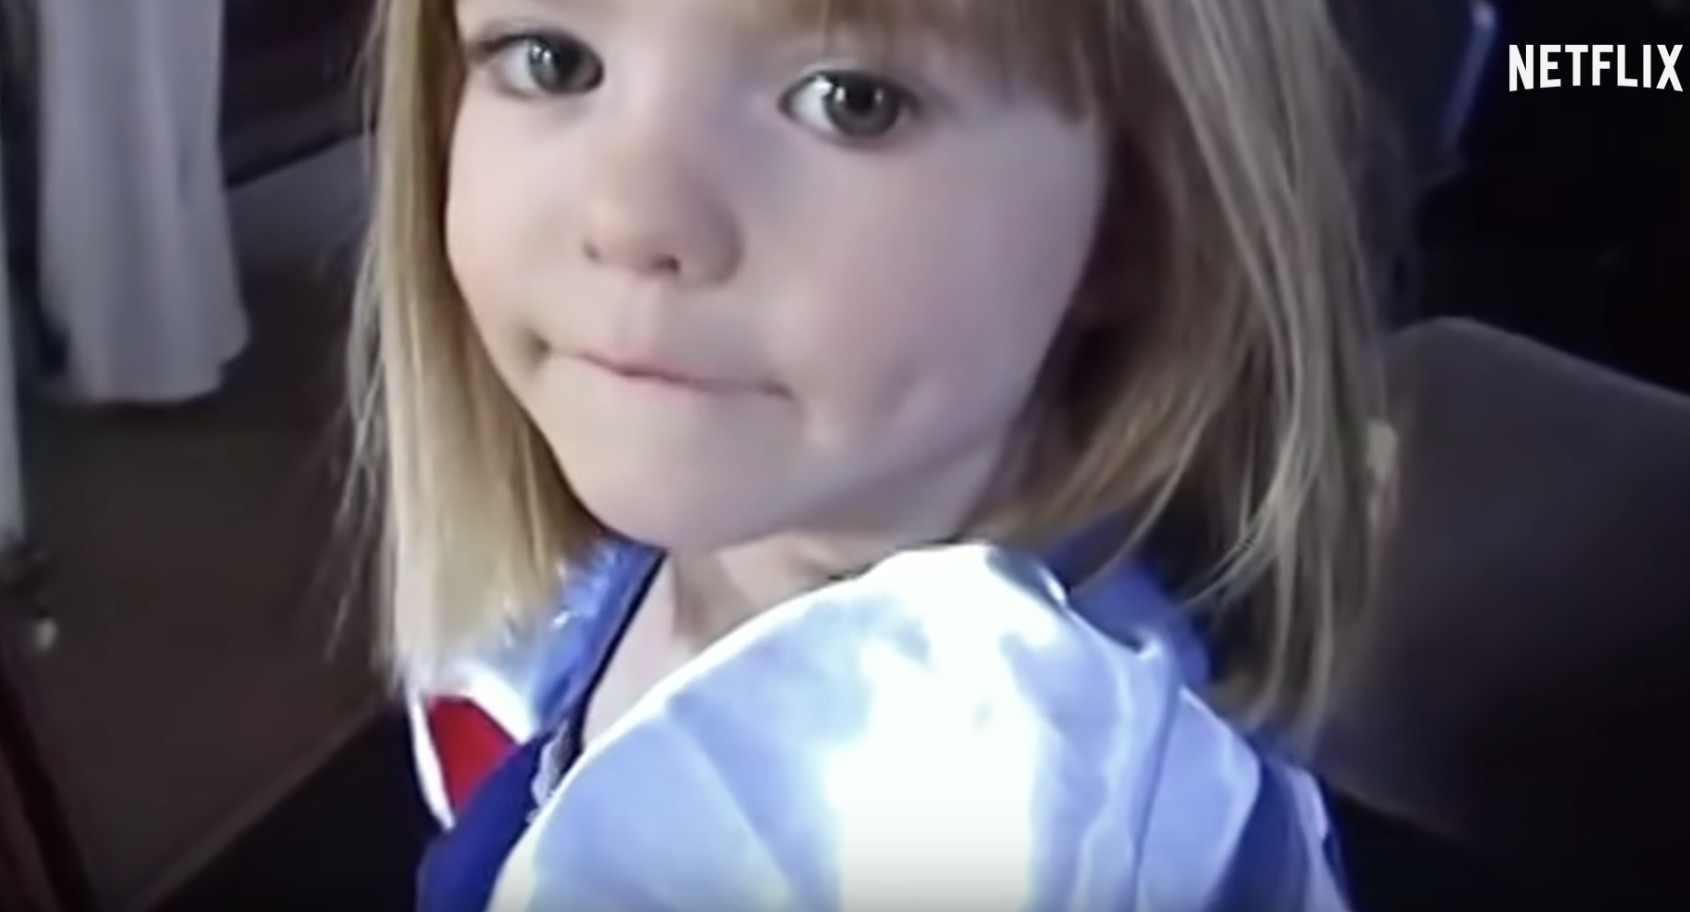 The trailer for the new Netflix true crime doc <em>The Disappearance of Madeleine McCann</em> will give you goosebumps